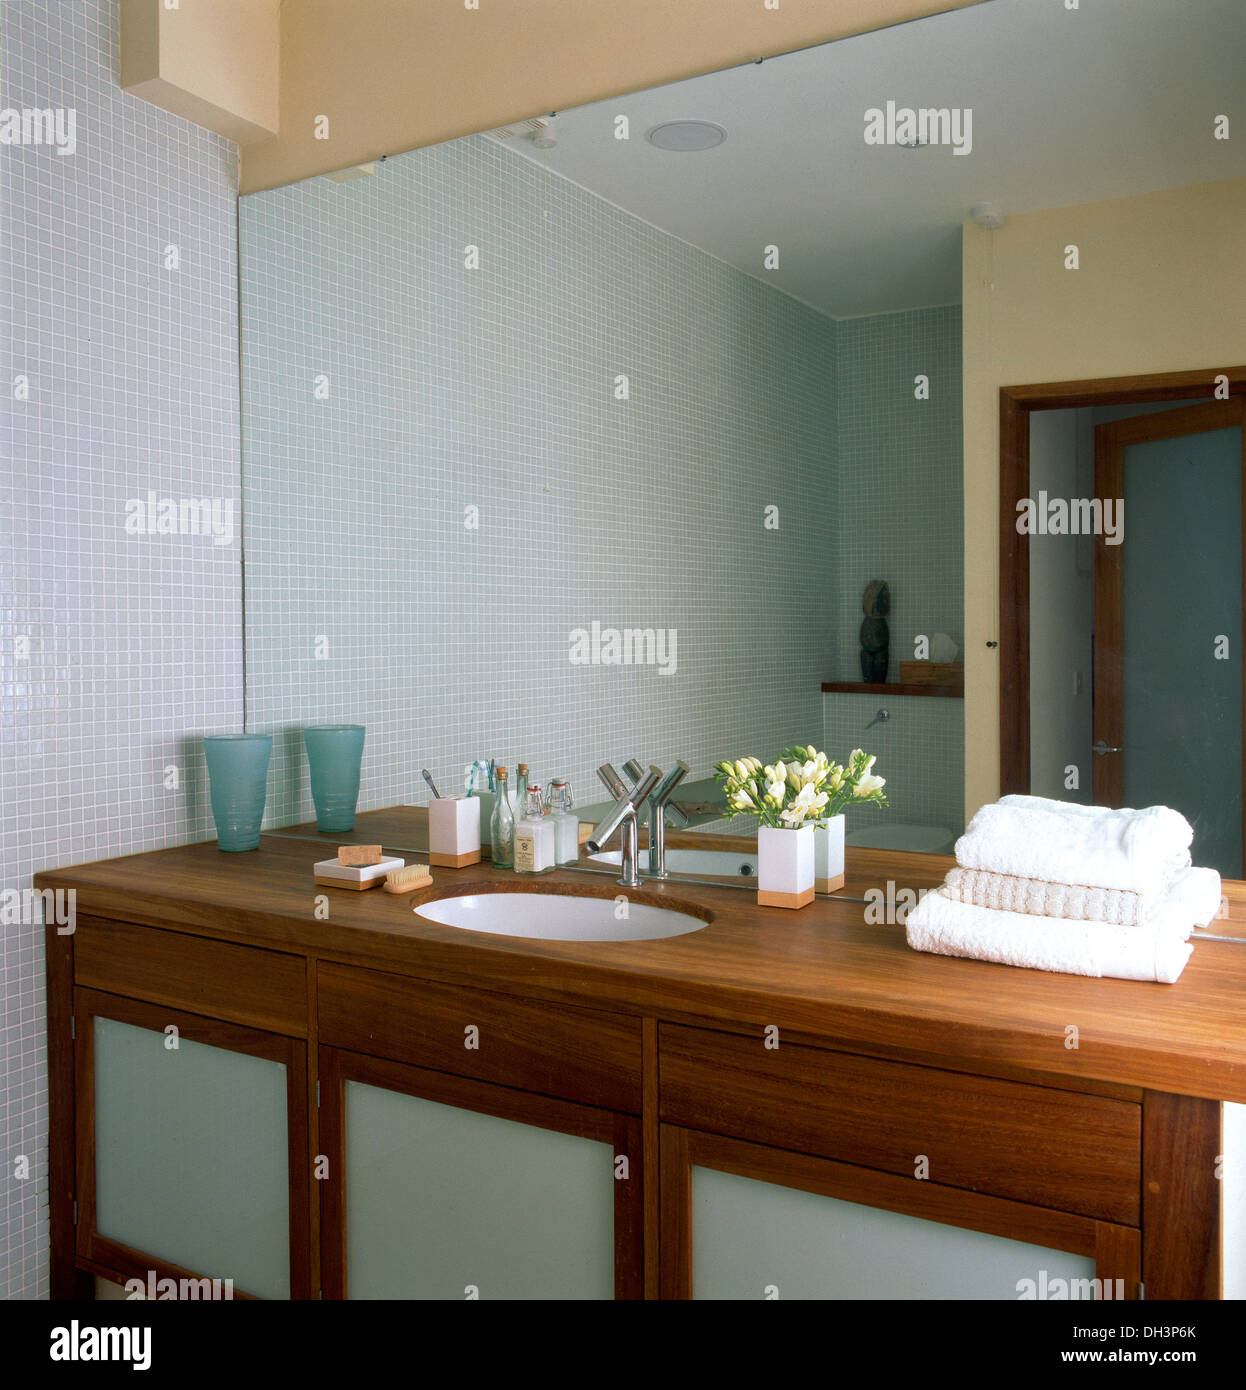 Mirrored wall above wooden vanity unit with under set basin in modern bathroom - Stock Image